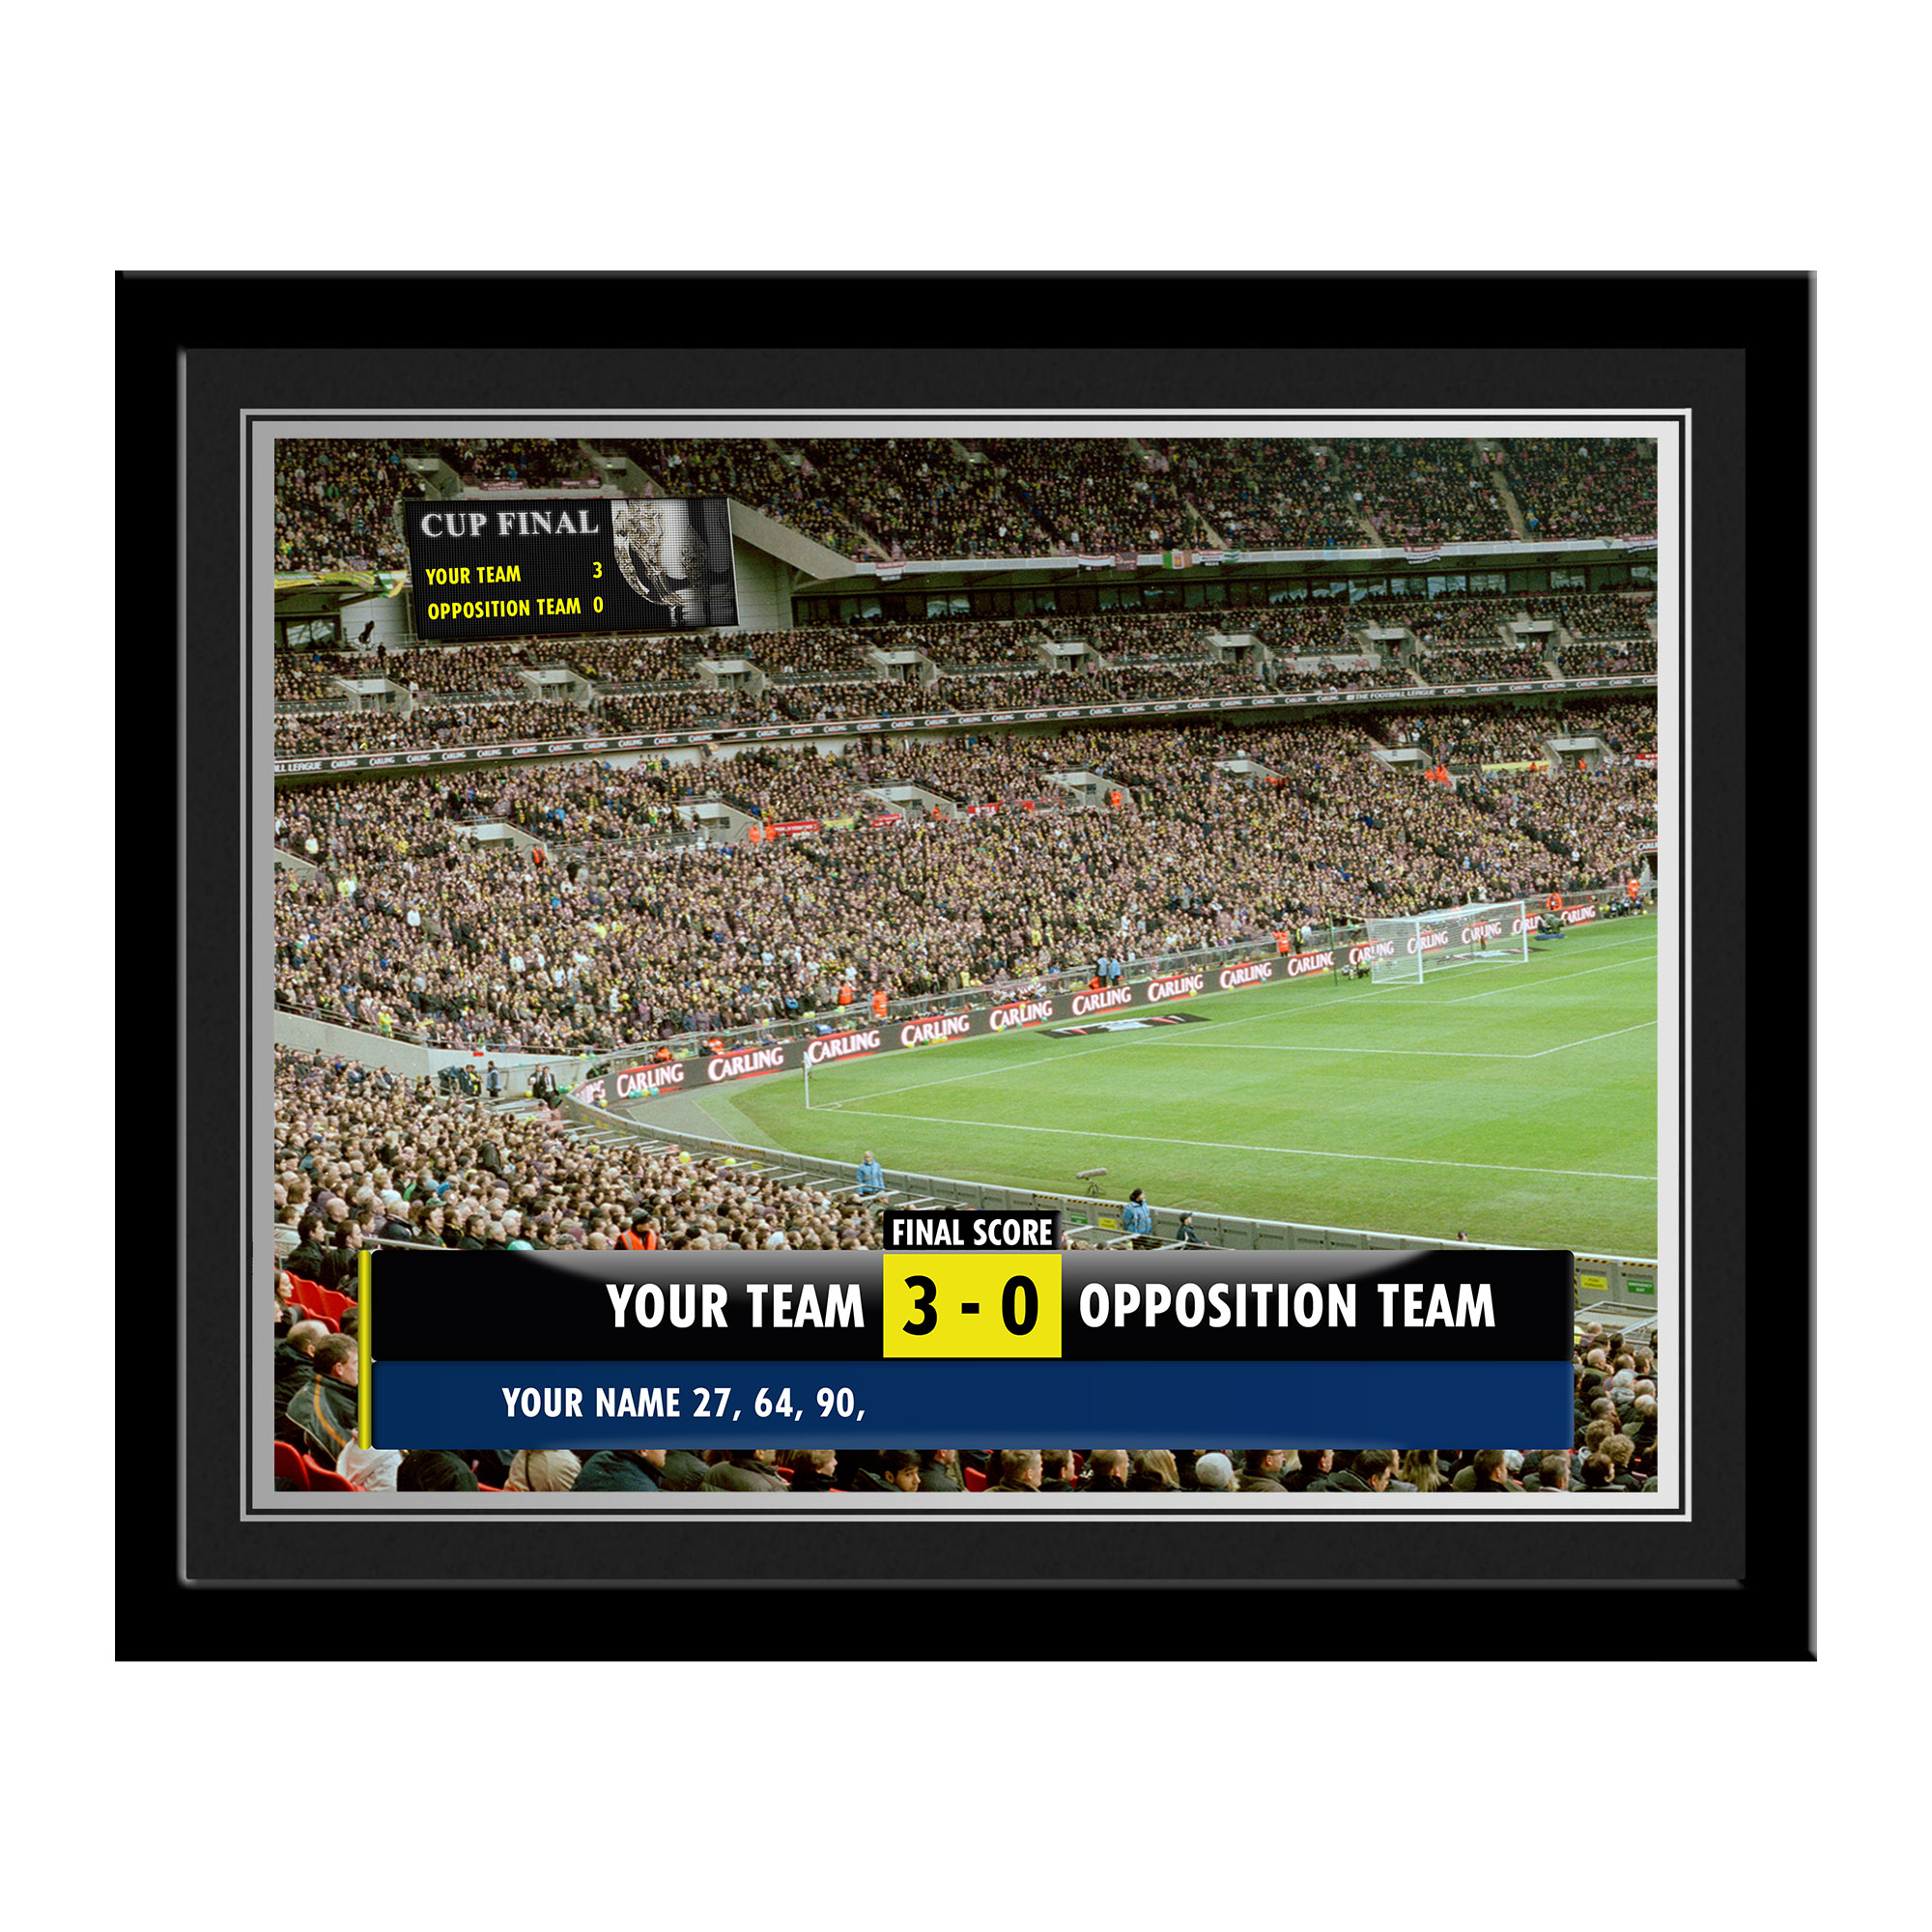 Personalised Football Scoreboard Photo - Framed